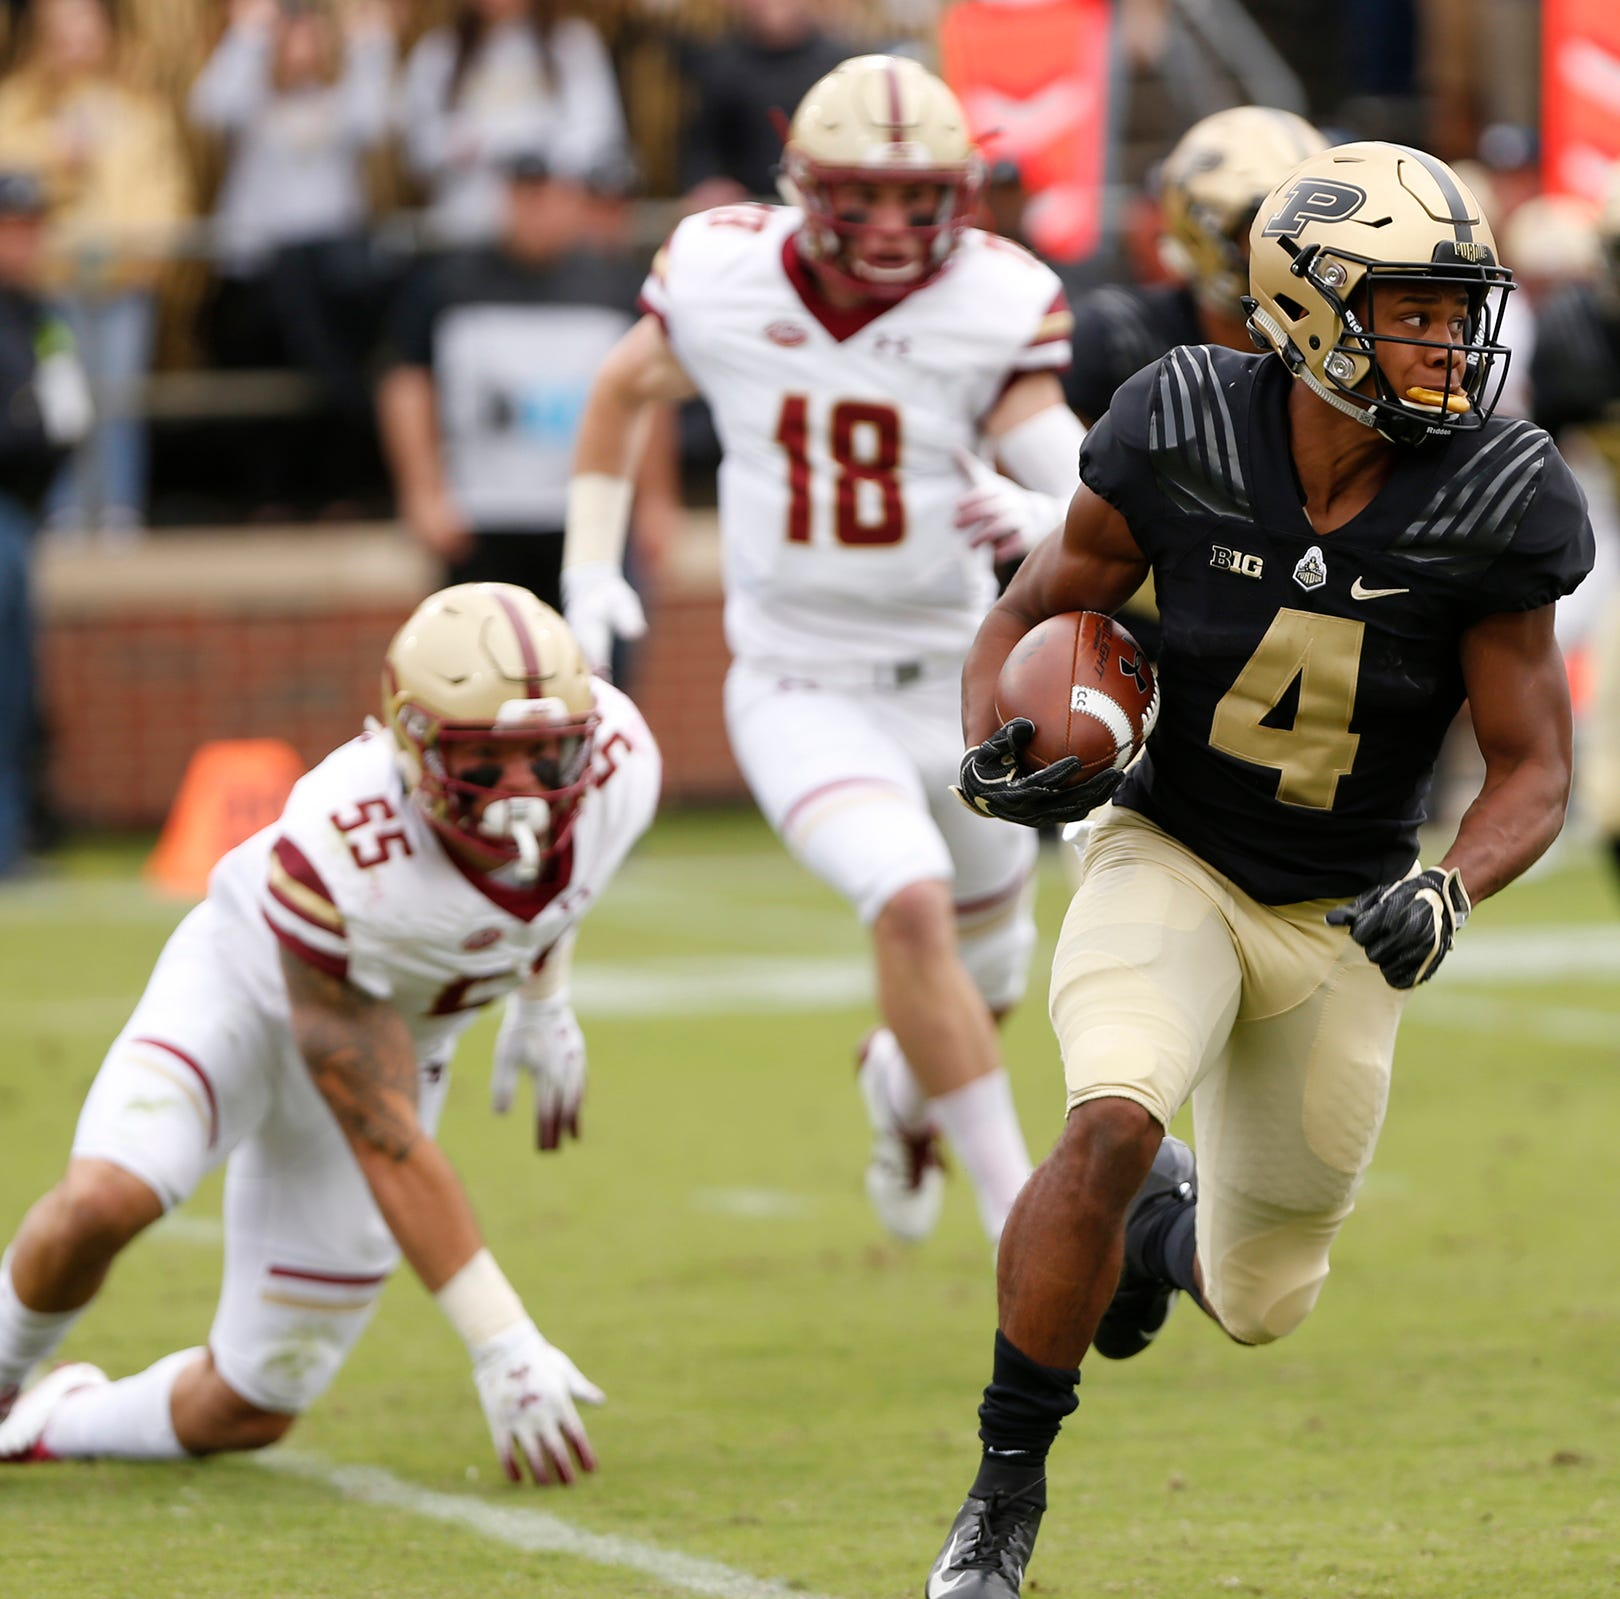 Purdue freshman Rondale Moore named consensus All-American